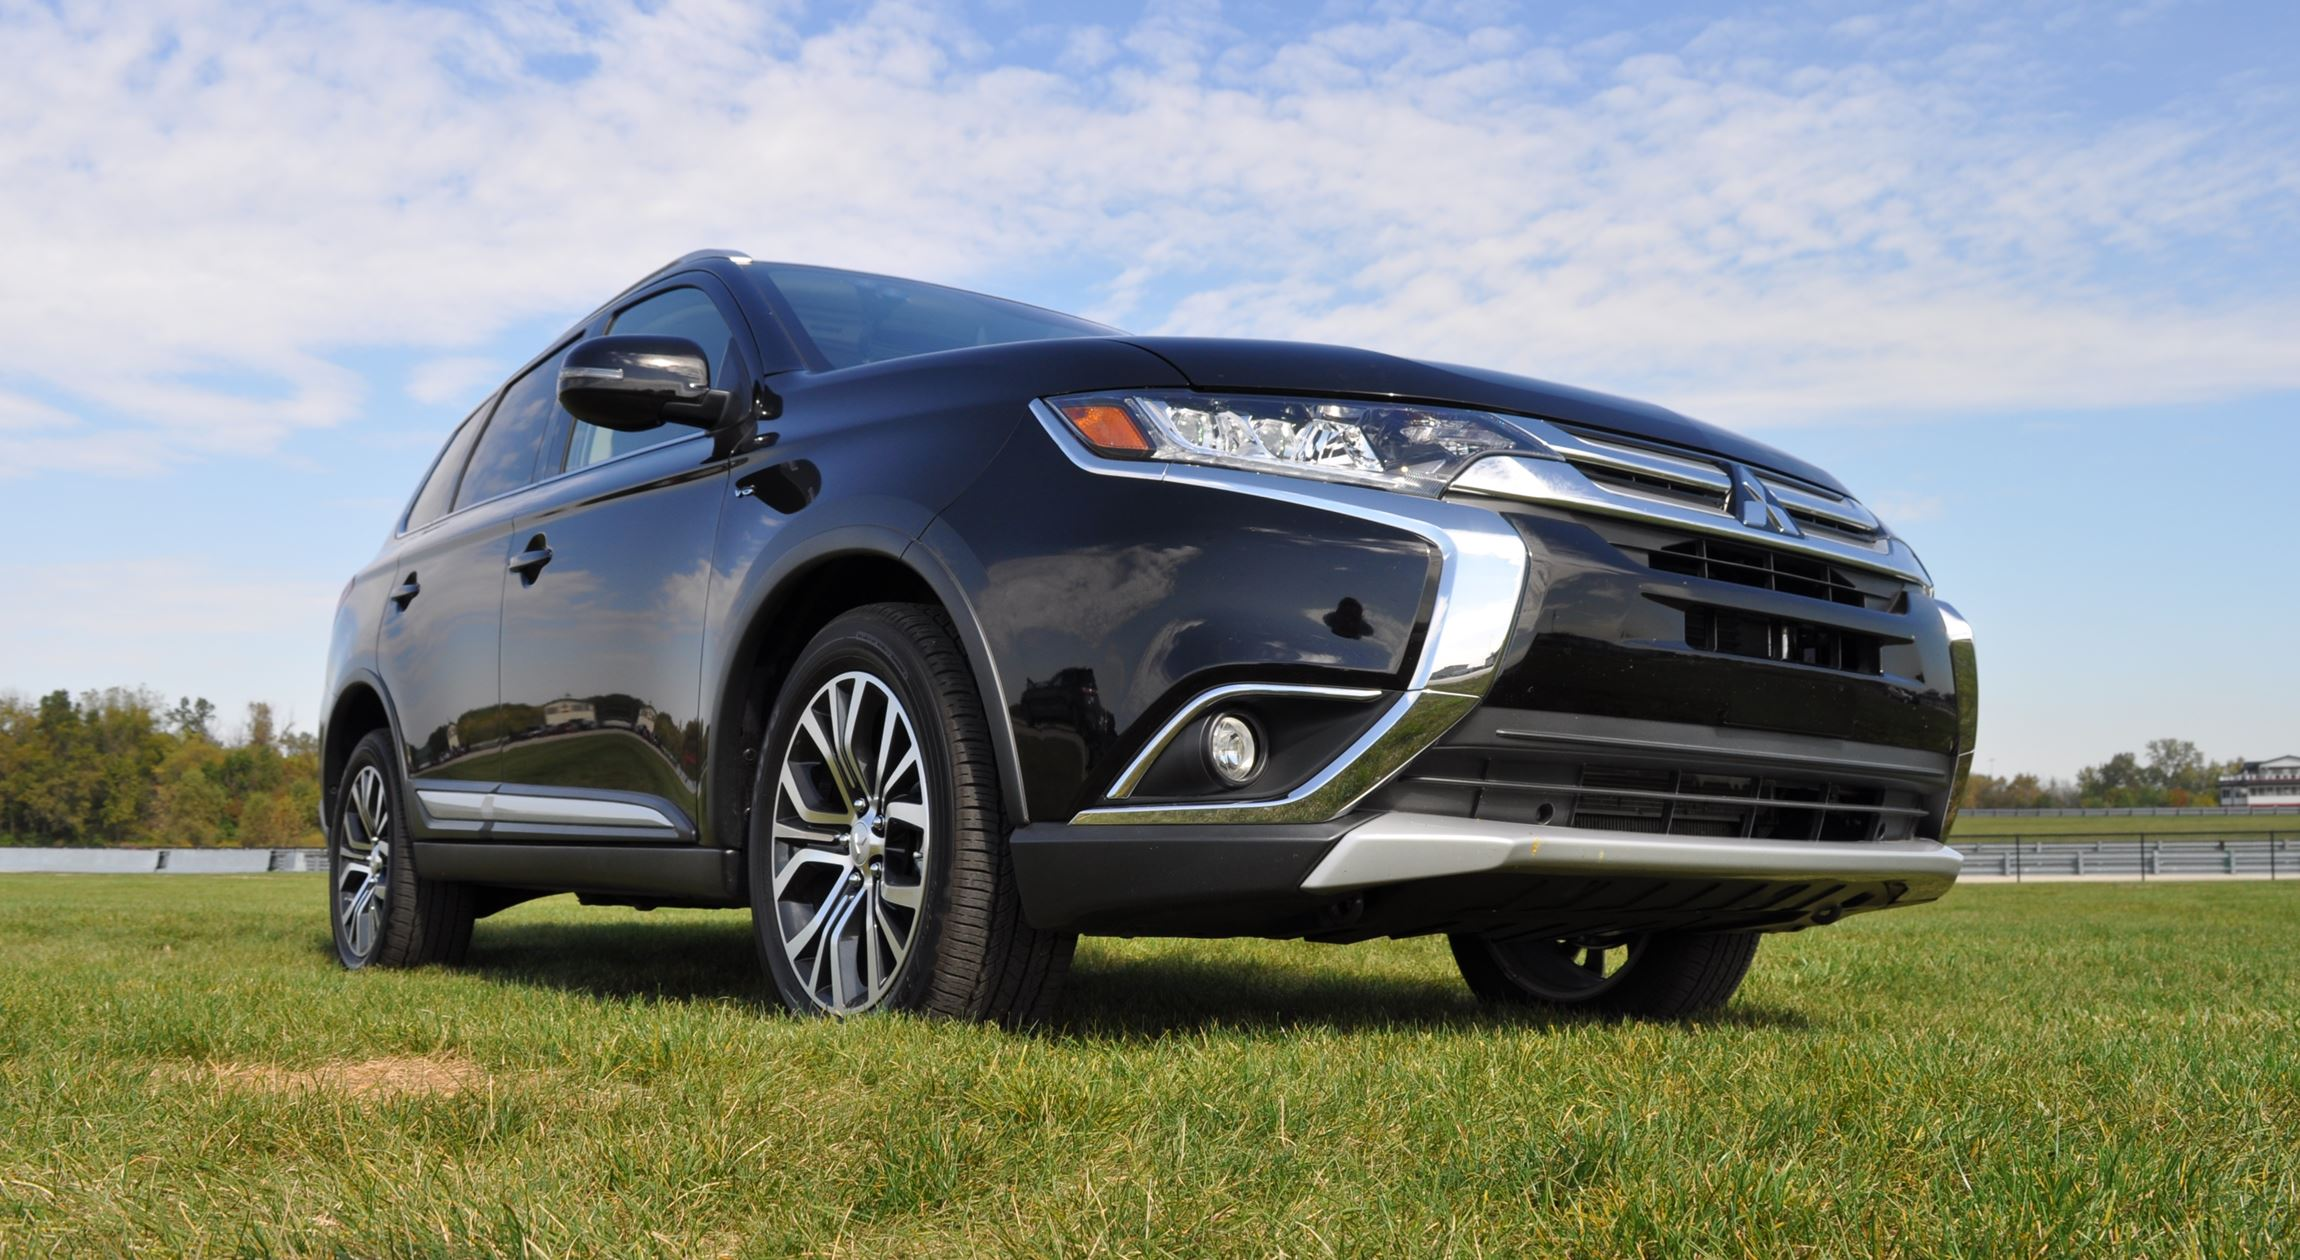 2016 mitsubishi outlander 3 0 gt s awc review 55. Black Bedroom Furniture Sets. Home Design Ideas